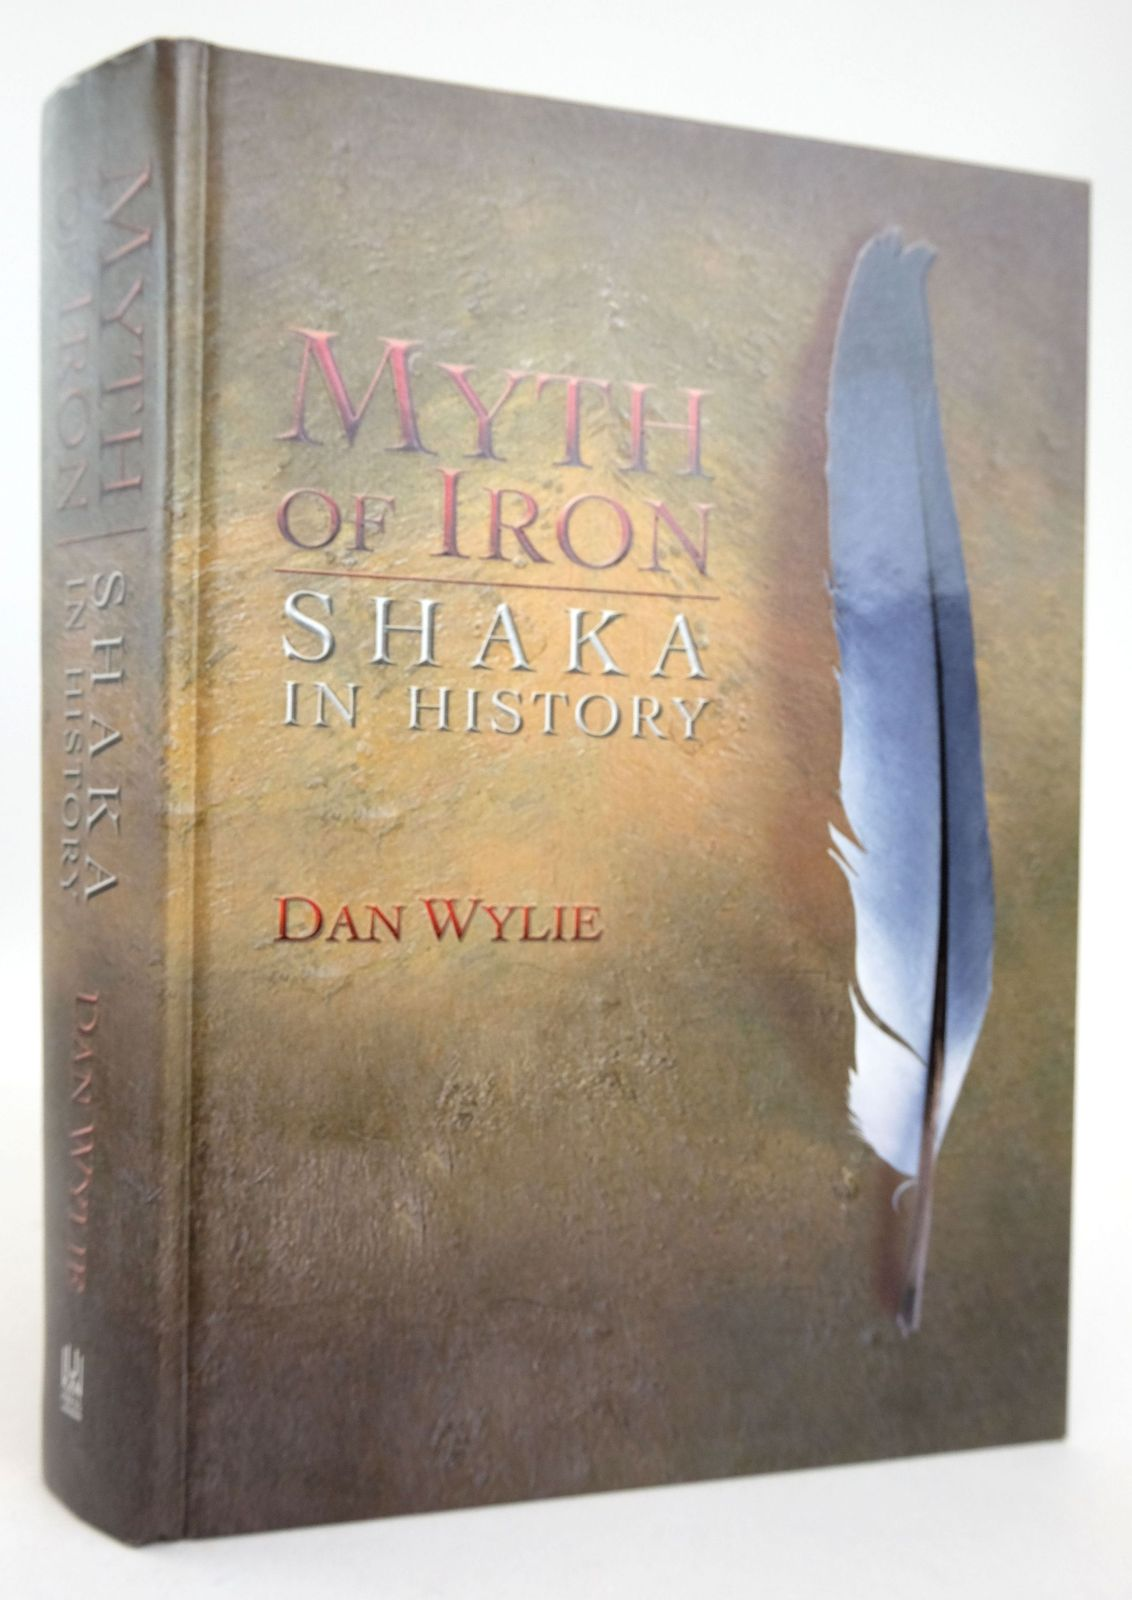 Photo of MYTH OF IRON: SHAKA IN HISTORY written by Wylie, Dan published by University Of Kwazulu-Natal Press (STOCK CODE: 1819581)  for sale by Stella & Rose's Books